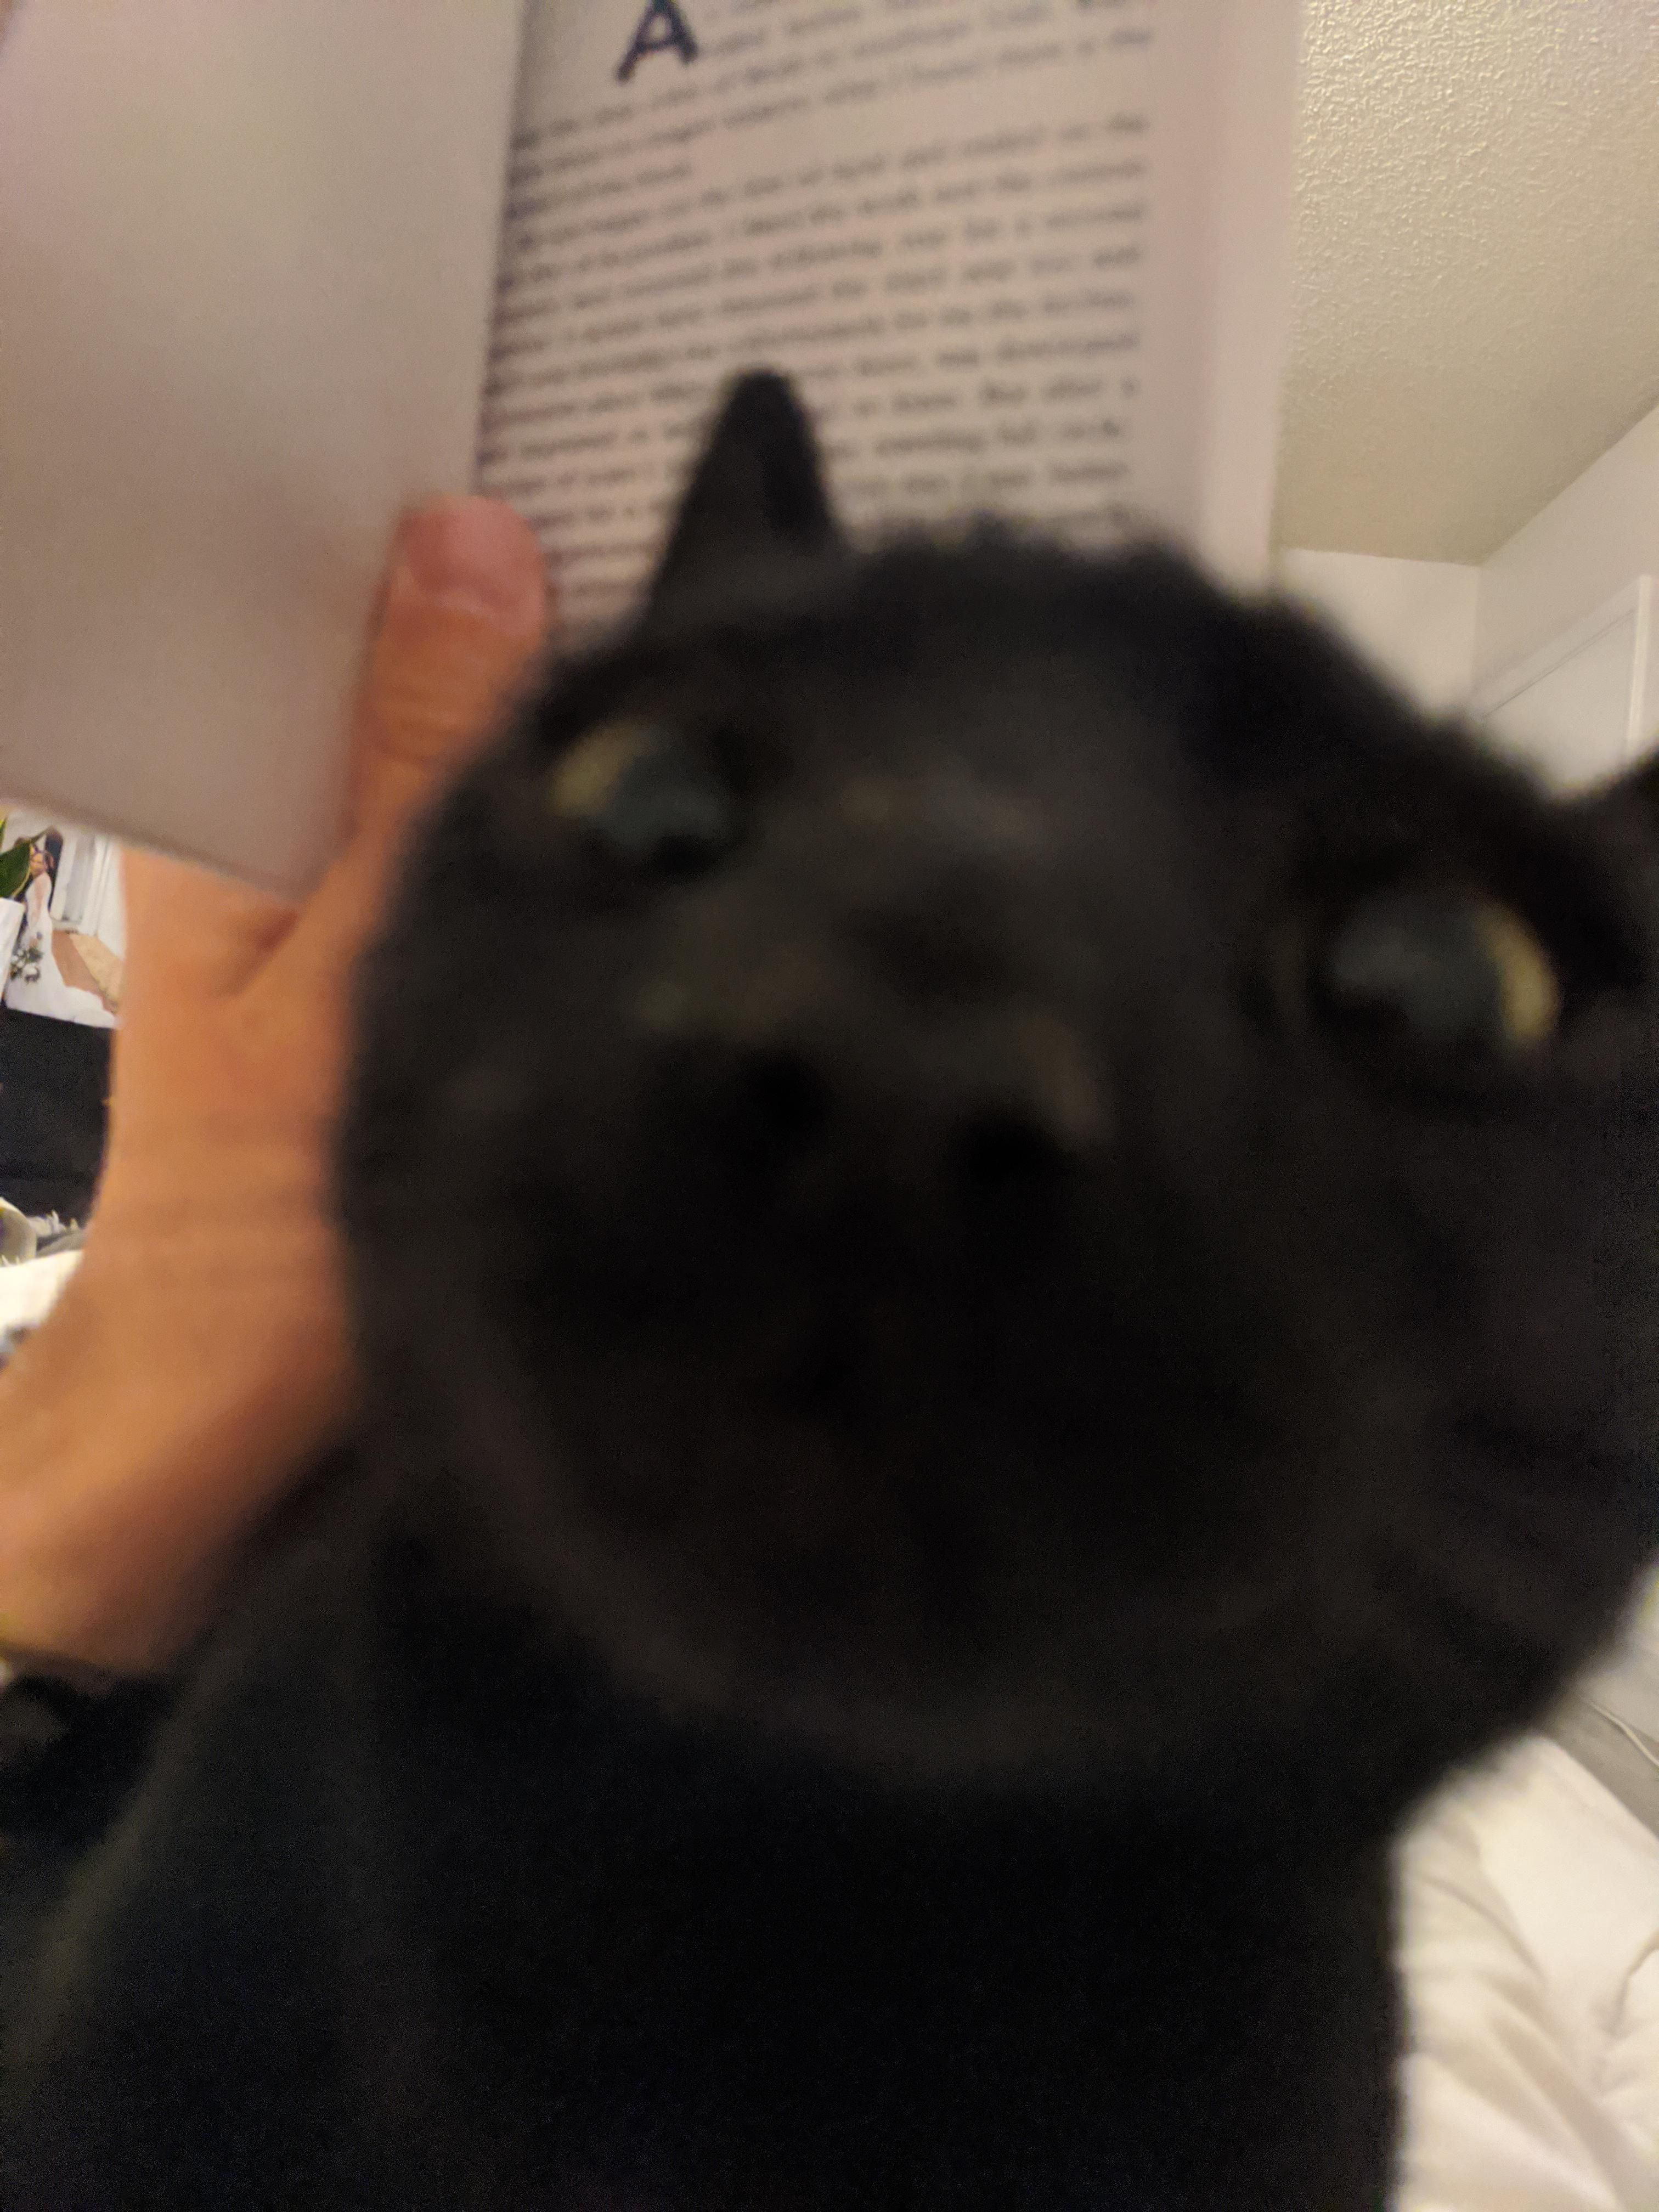 First person view of attempting to read.